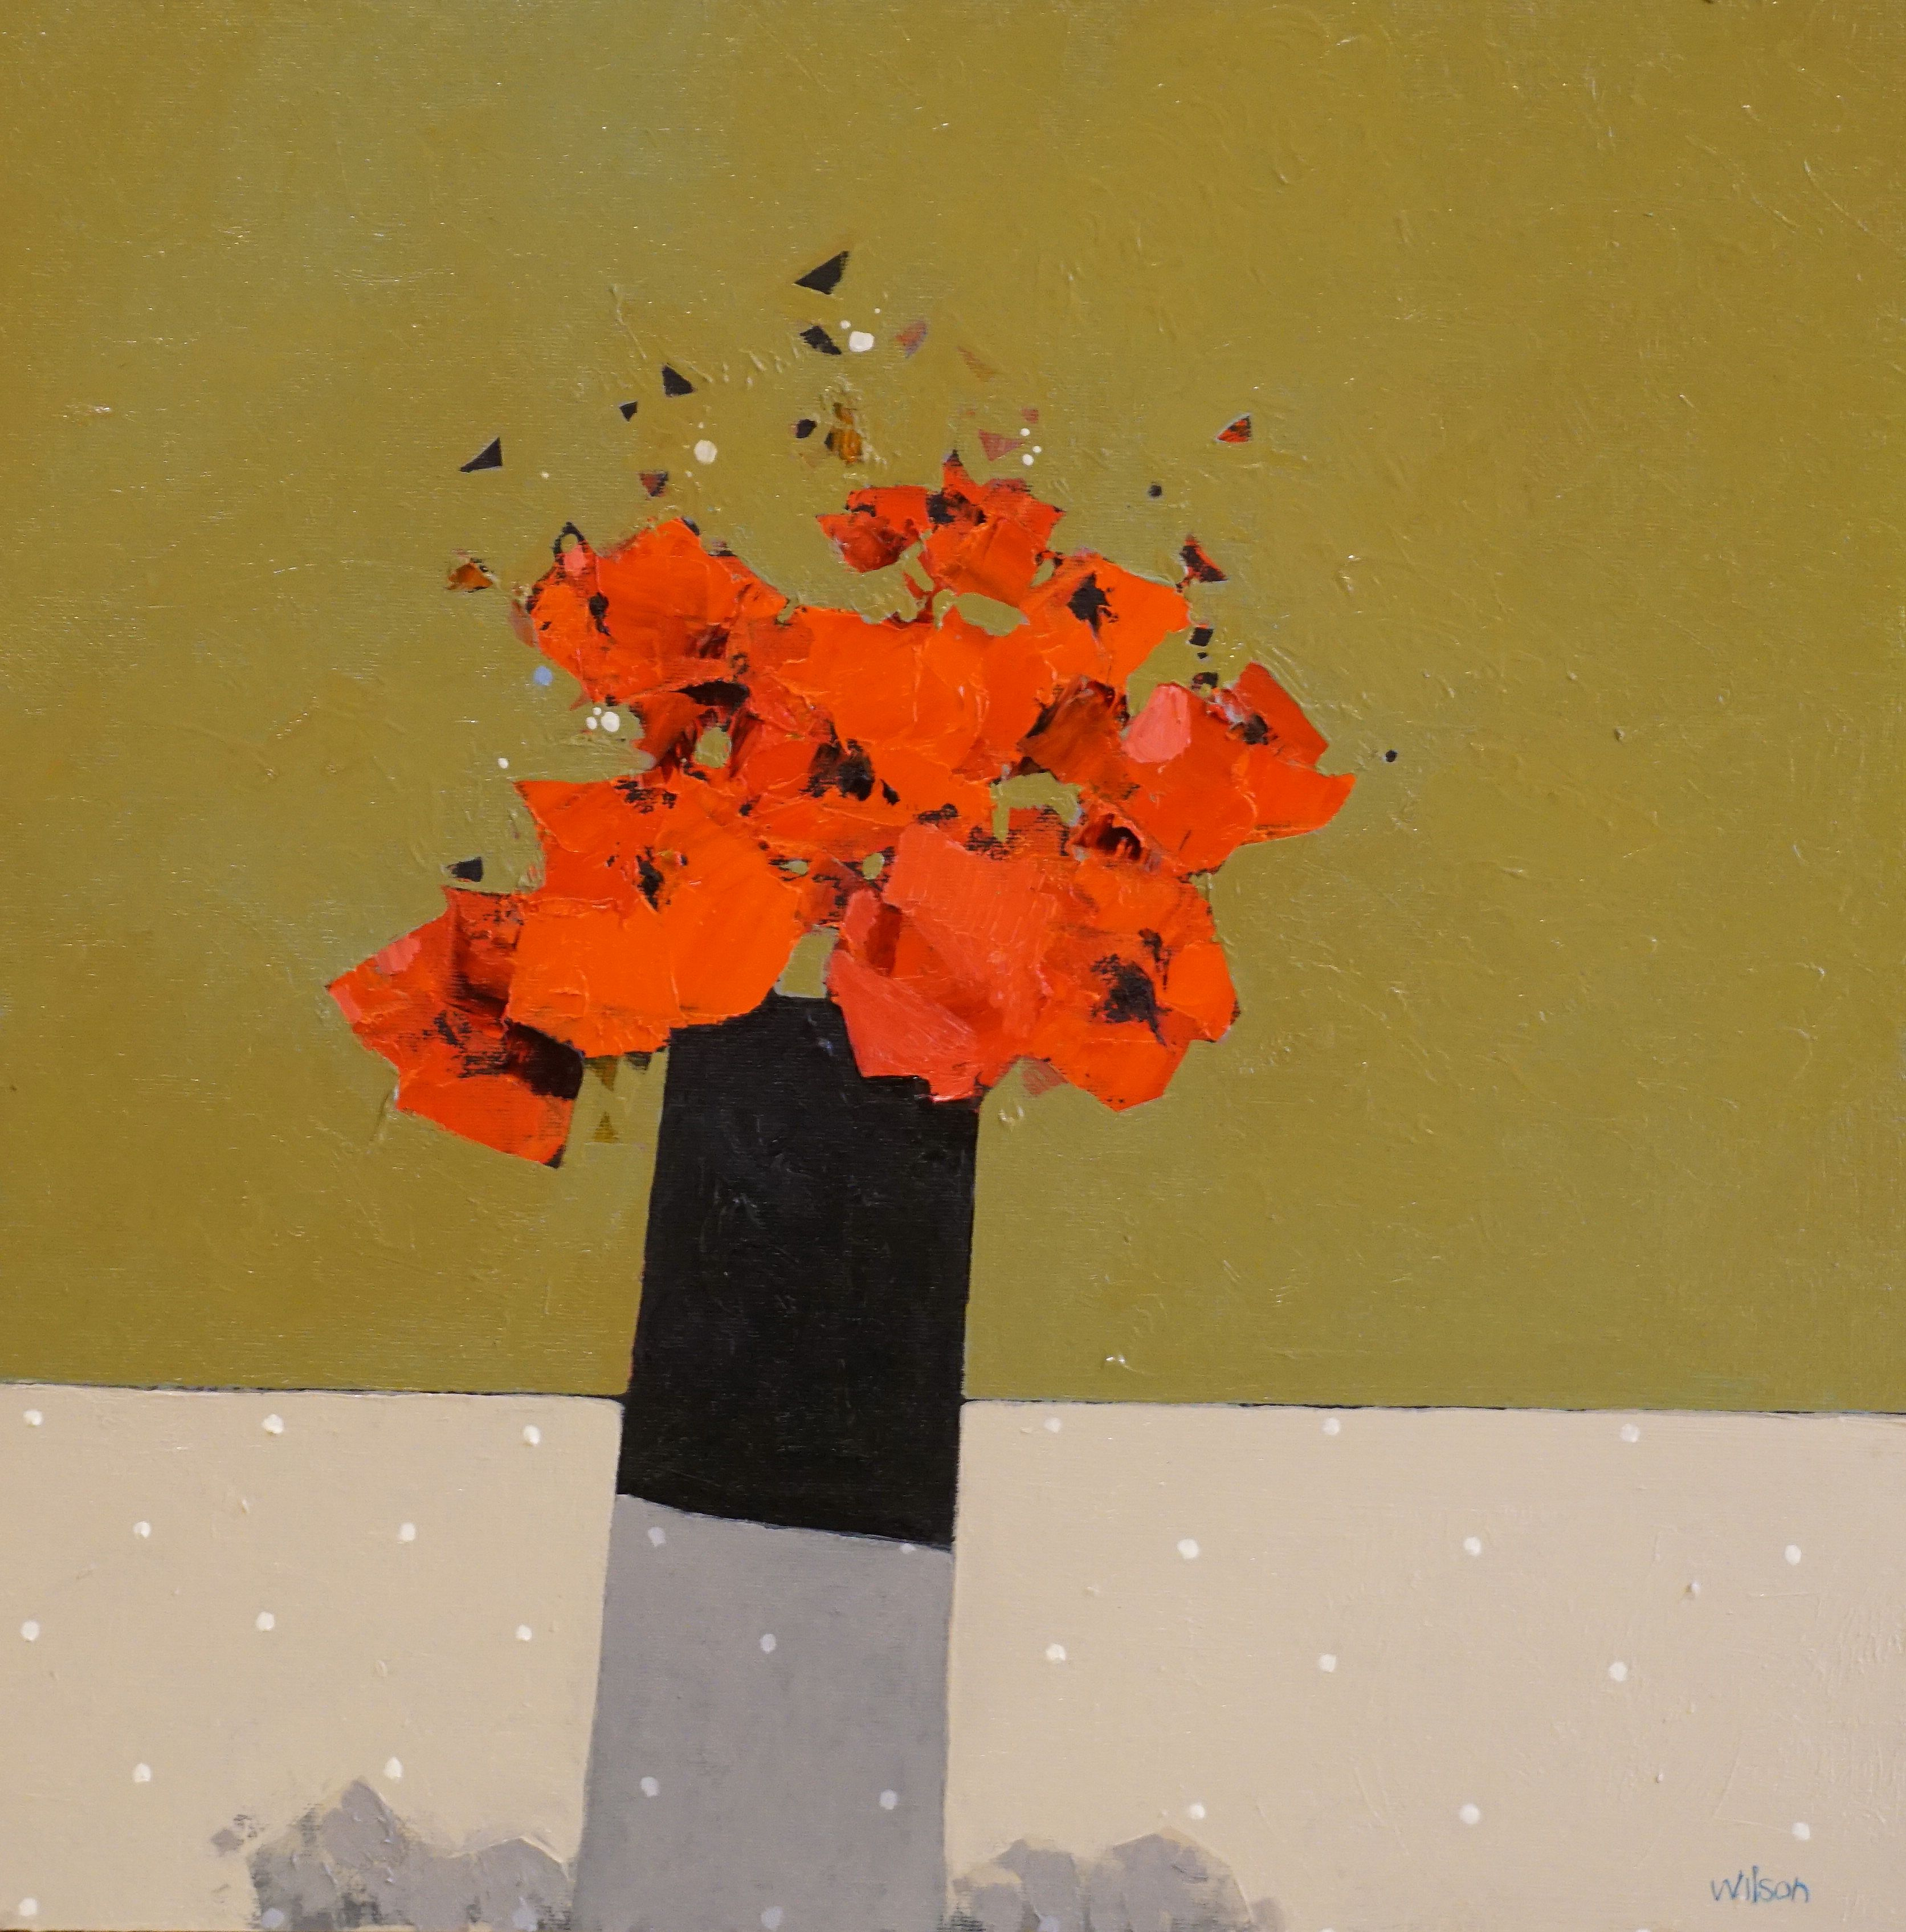 Gordon  Wilson - Small Dark Vase Of Poppies II